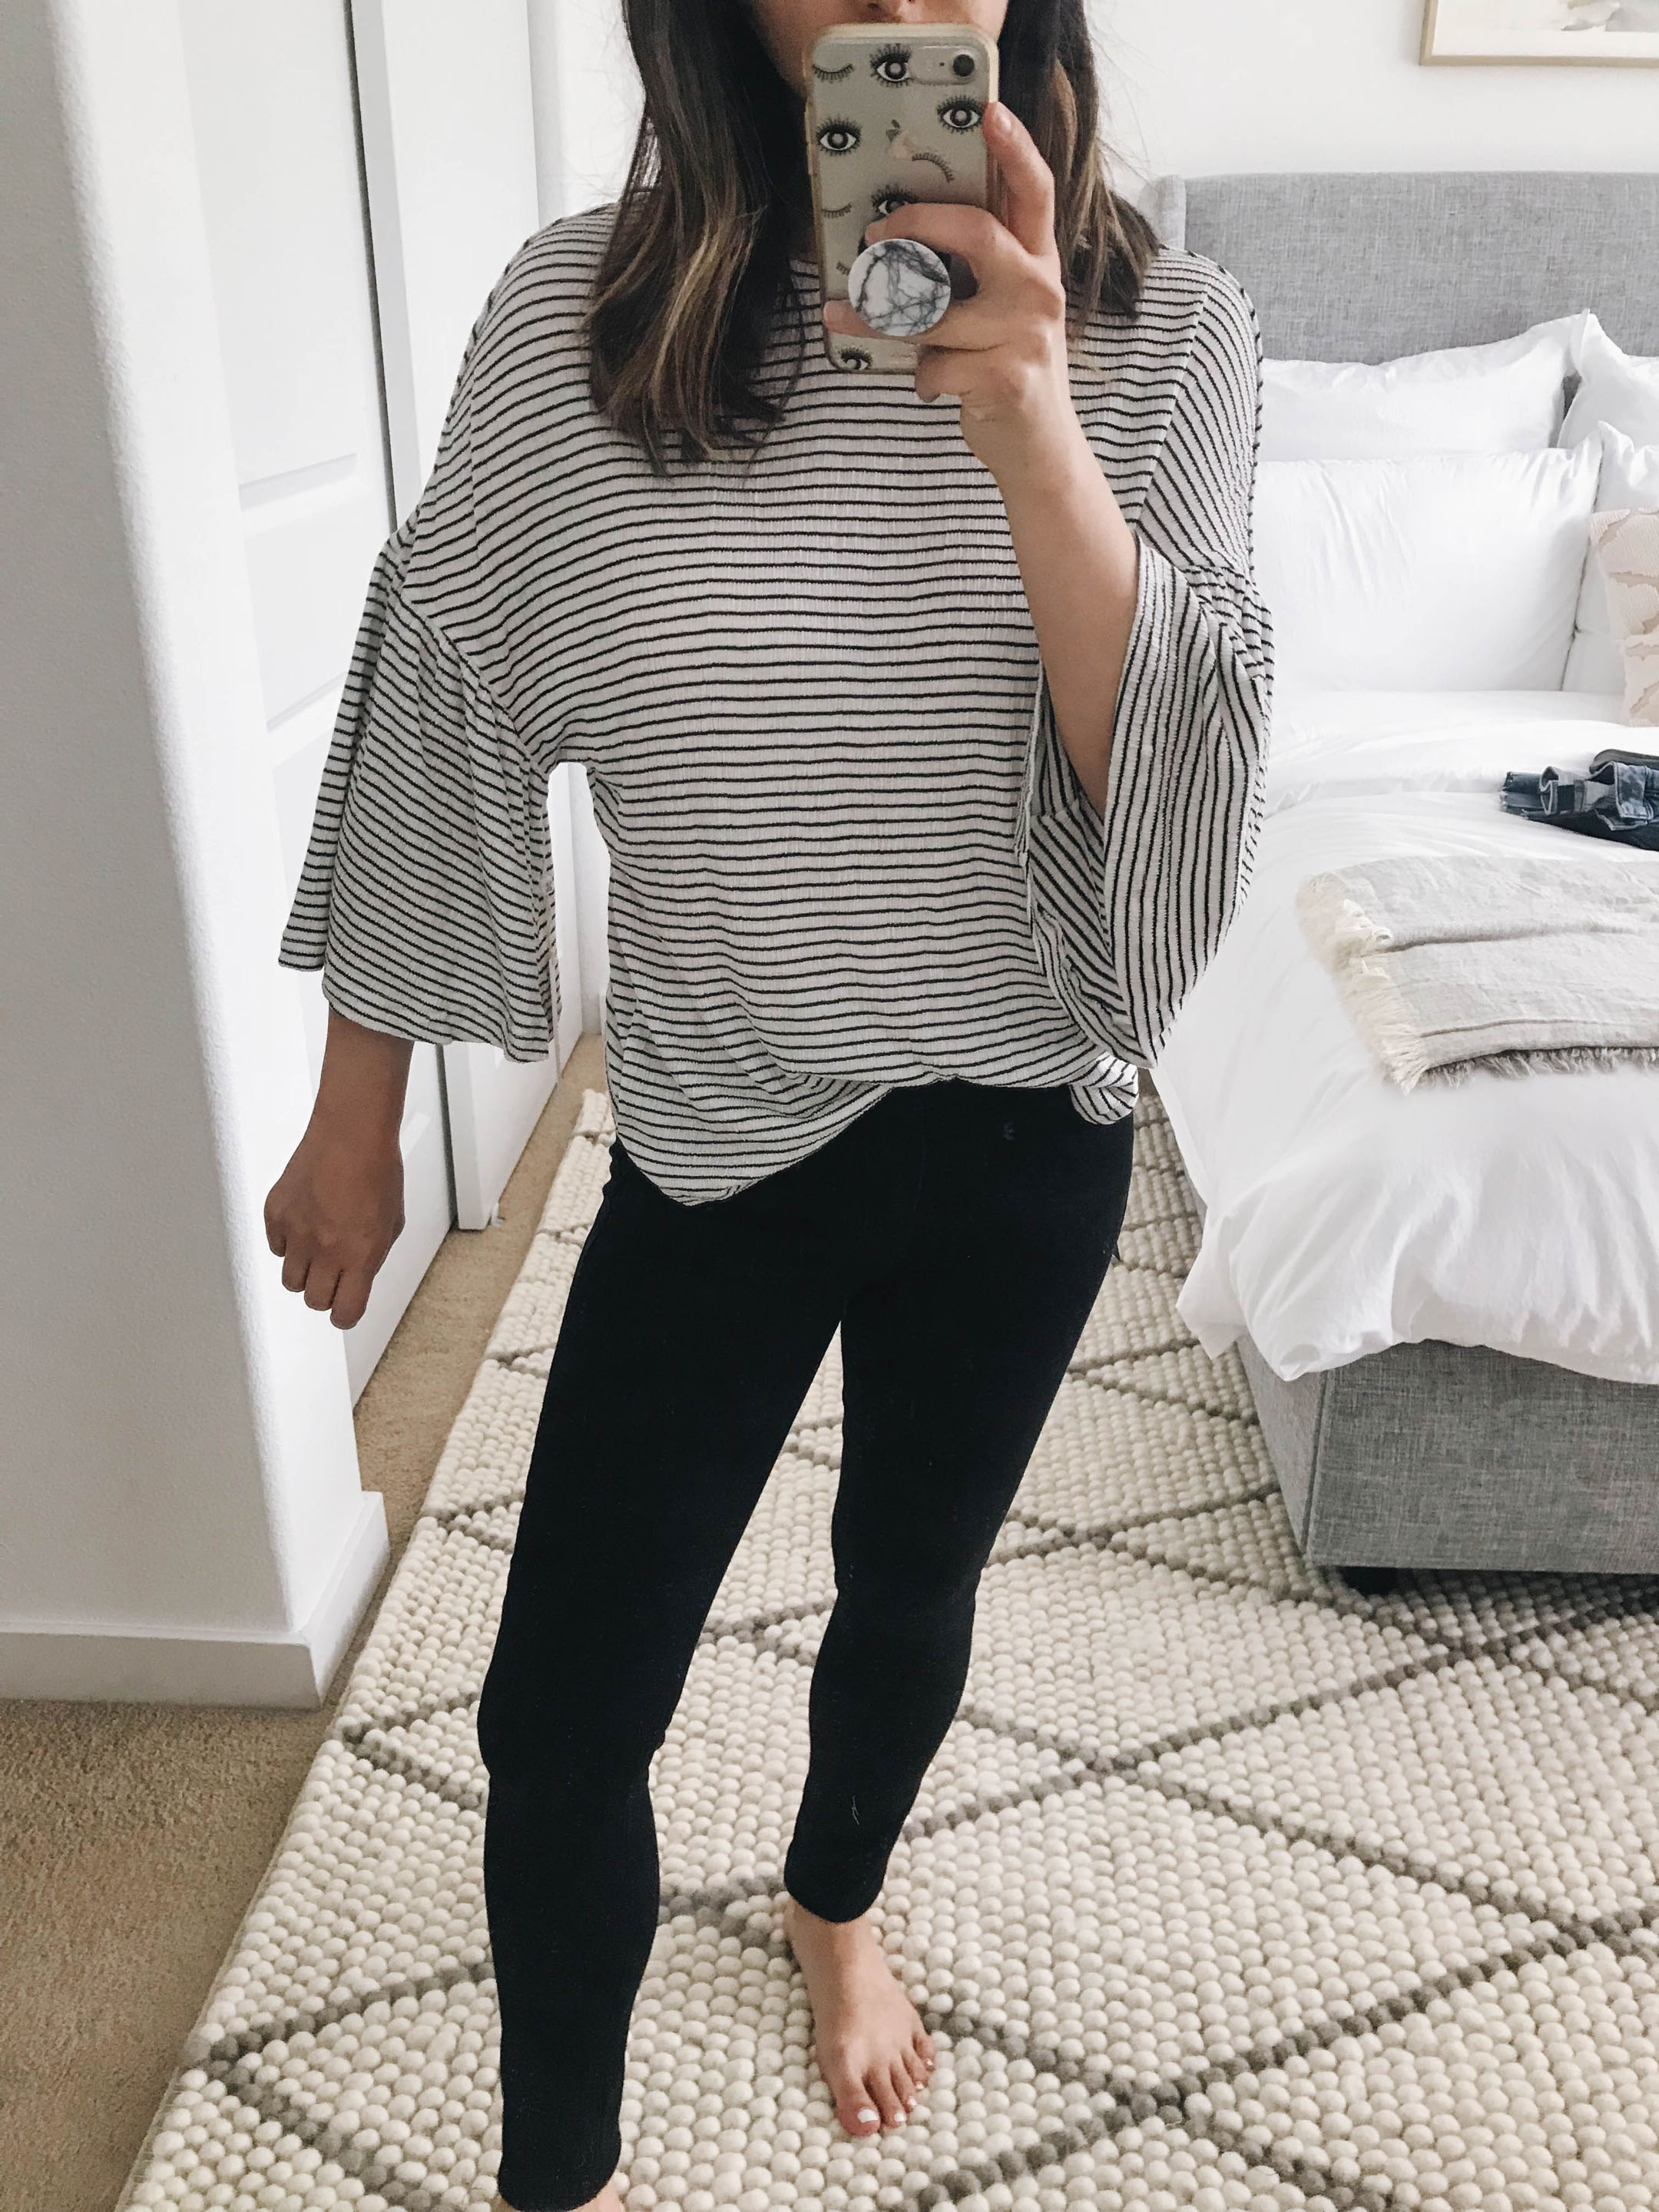 3927a49405e65 Caslon Stripe Bell Sleeve Tee petite xxs – This tee was part of the Nordstrom  Anniversary Sale last year and they brought it back.